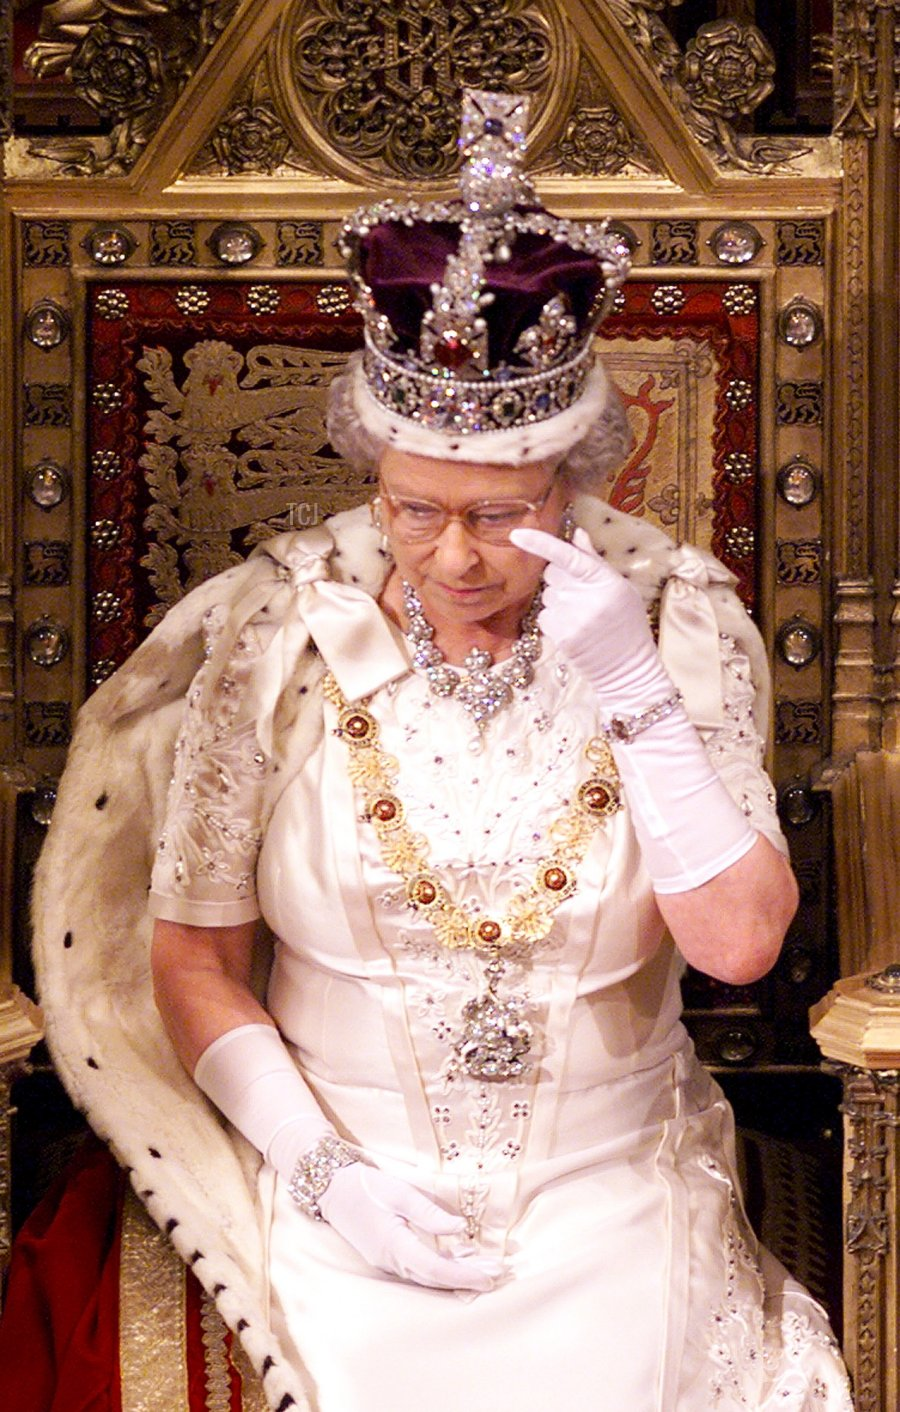 Britain's Queen Elizabeth II wipes her eye following her speech at the State Opening of Parliament 17 November 1999 in the House of Lords. The Queen made her opening speech in which she outlined what her goverment proposes to introduce to parliament and marks the opening of the session